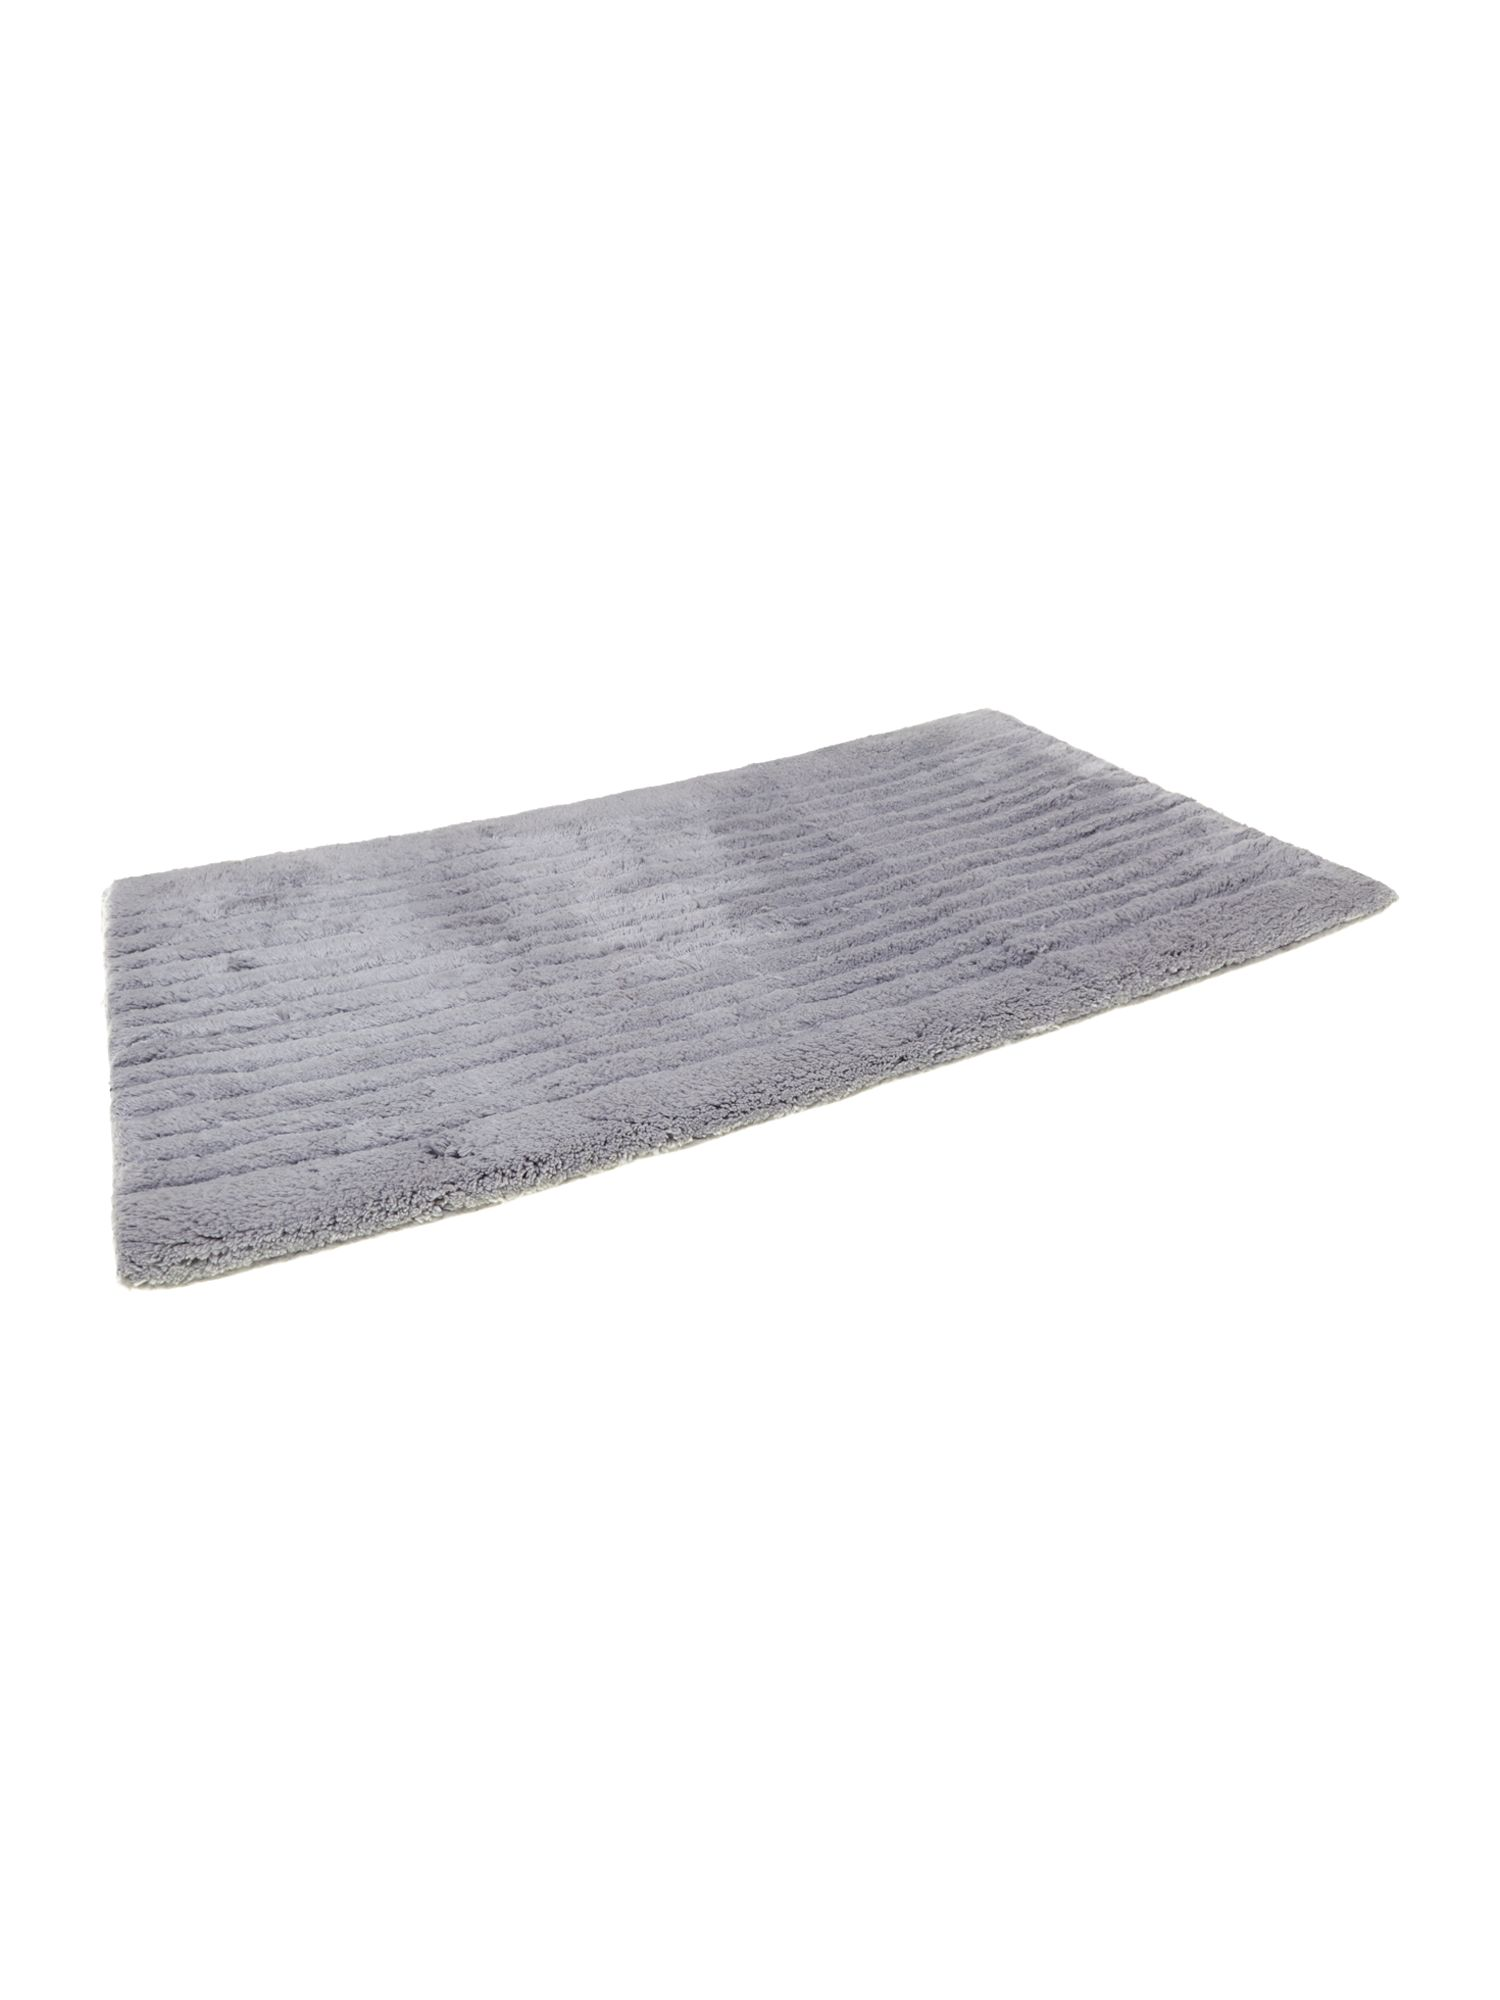 Classic luxury bathmat lunar